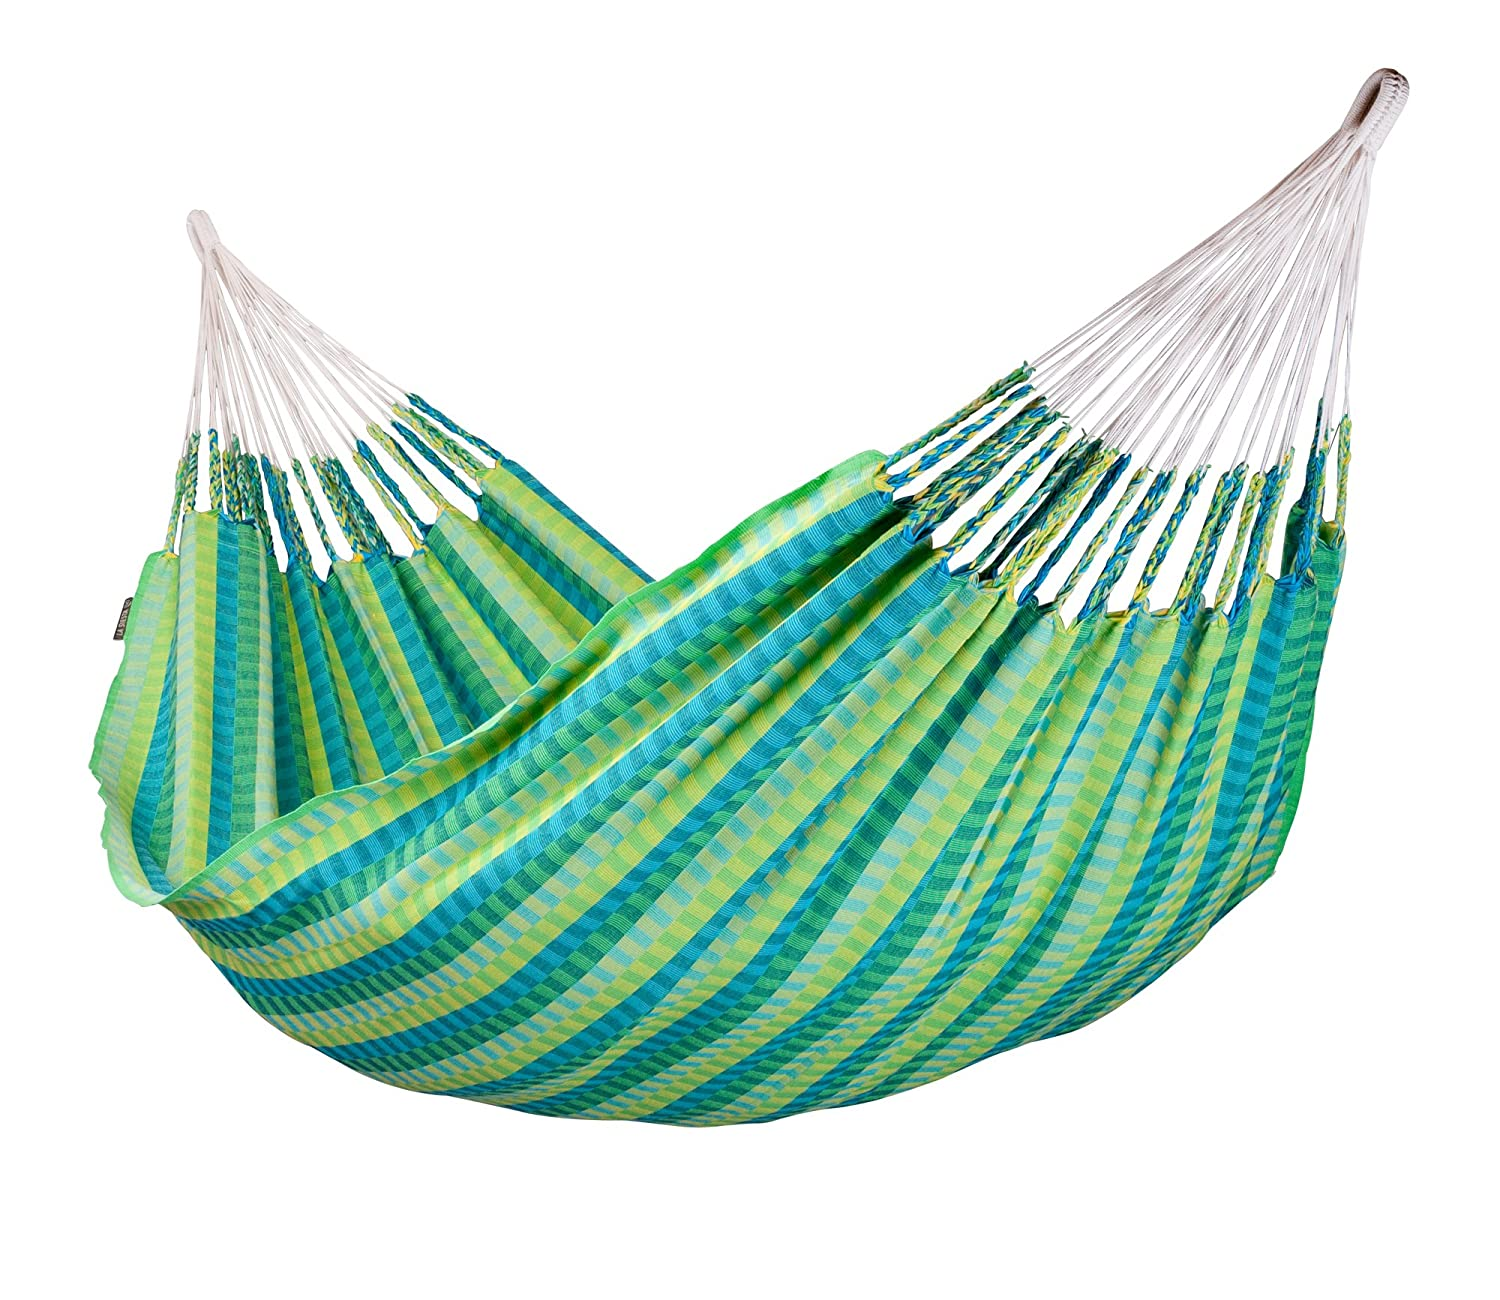 azothea hammock product colombian model family zebra aniversario